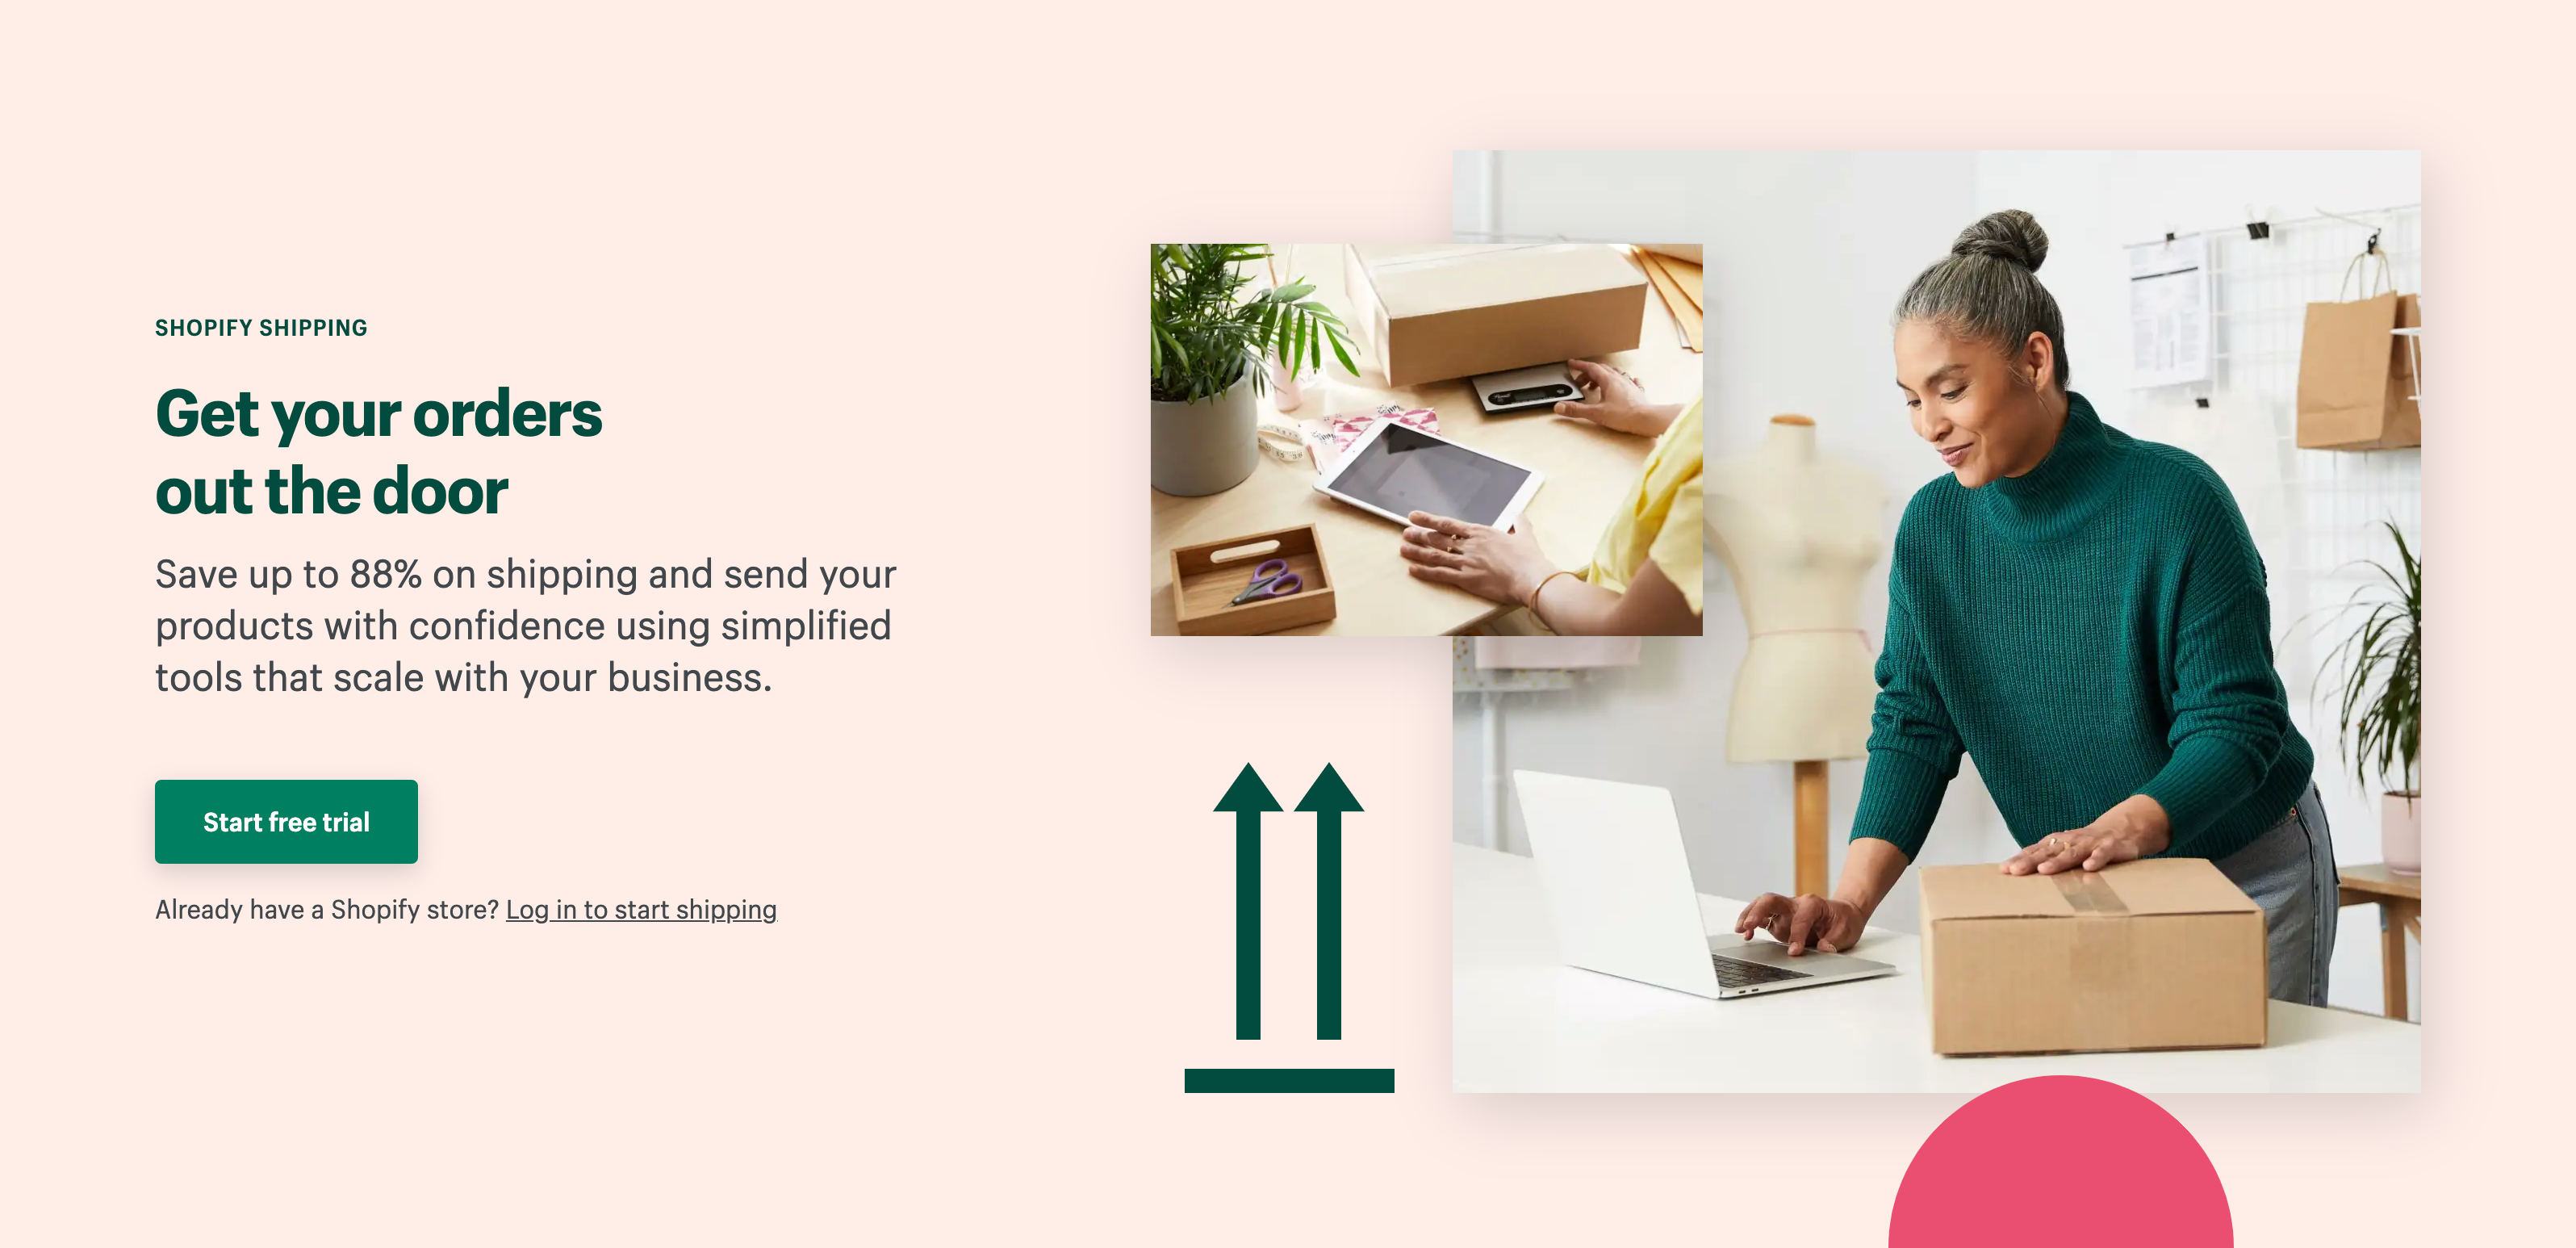 Shopify shipping landing page get your orders out the door